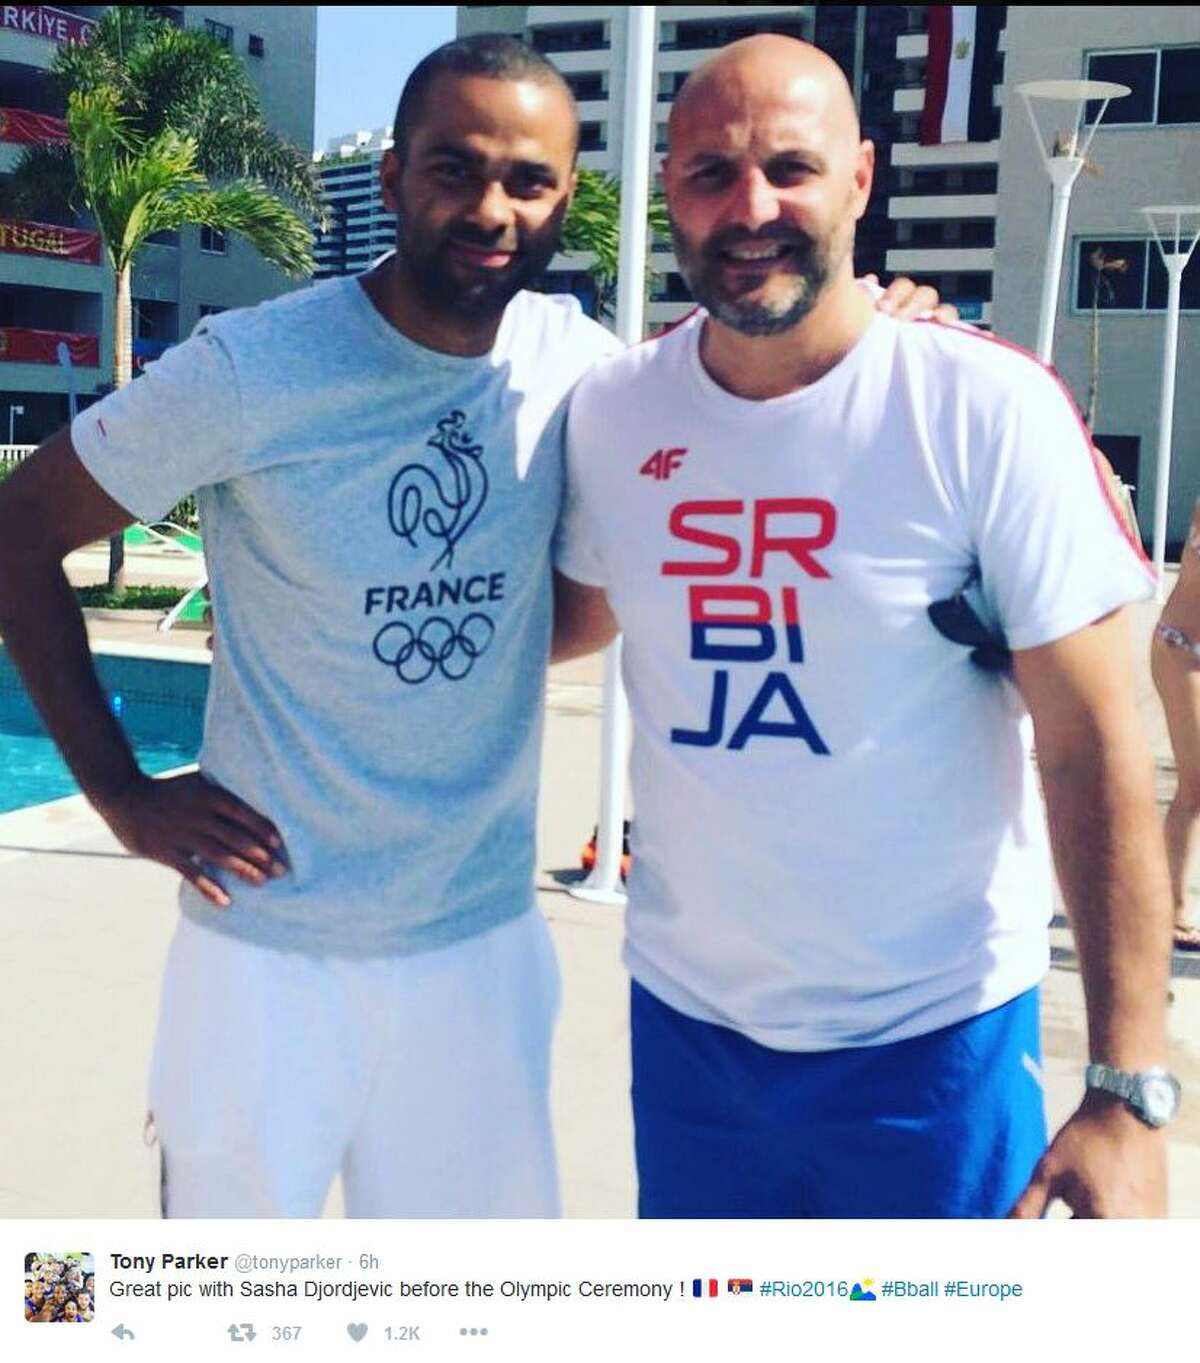 Spurs Tony Parker took this selfie with Sasha Djordevic before the opening of the Olympics Friday.